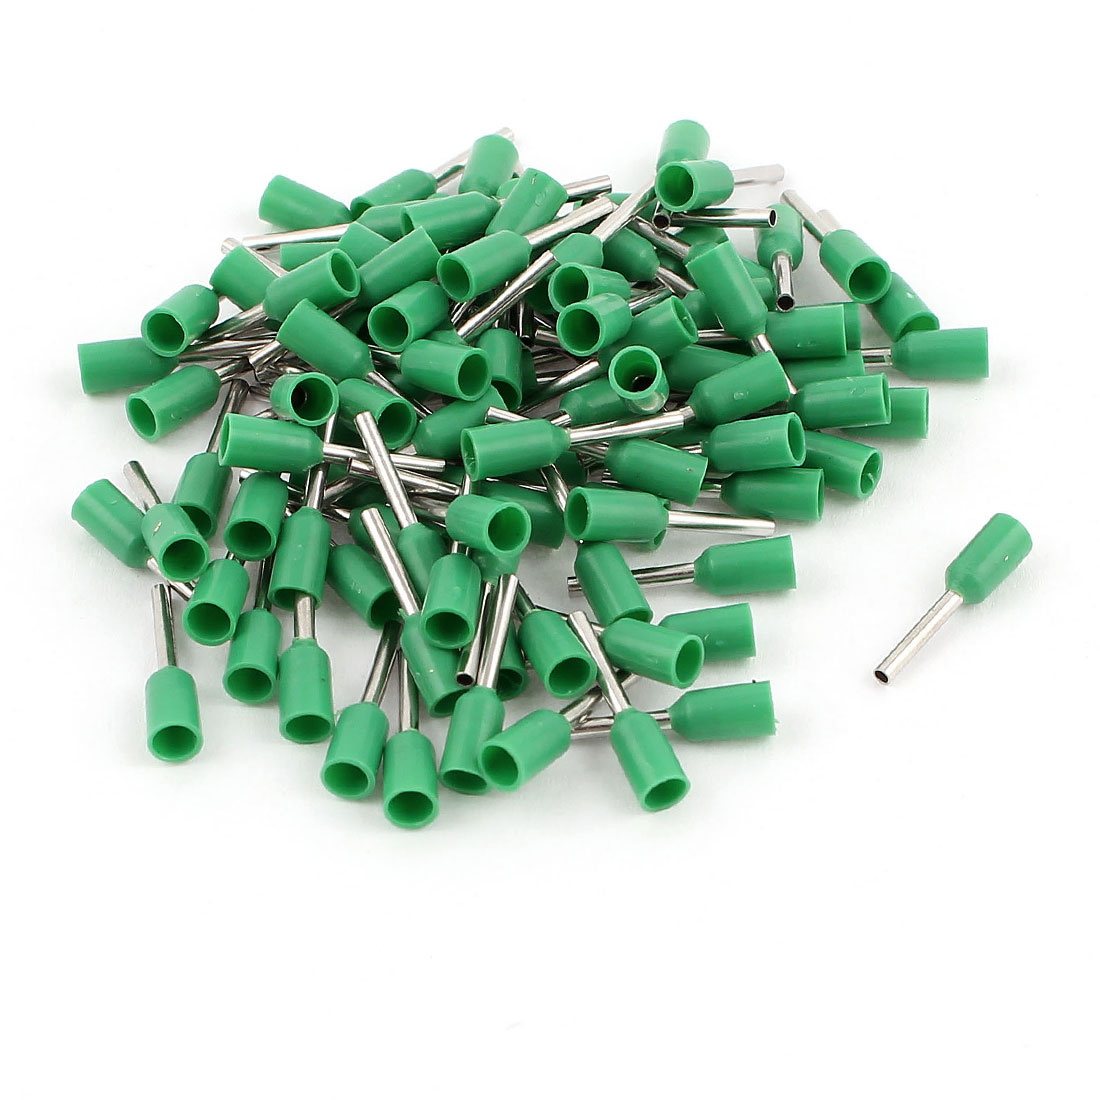 100 Pcs 0.5mm2 Crimp Cord Wire End Terminal Insulated Bootlace Ferrule Connector Green